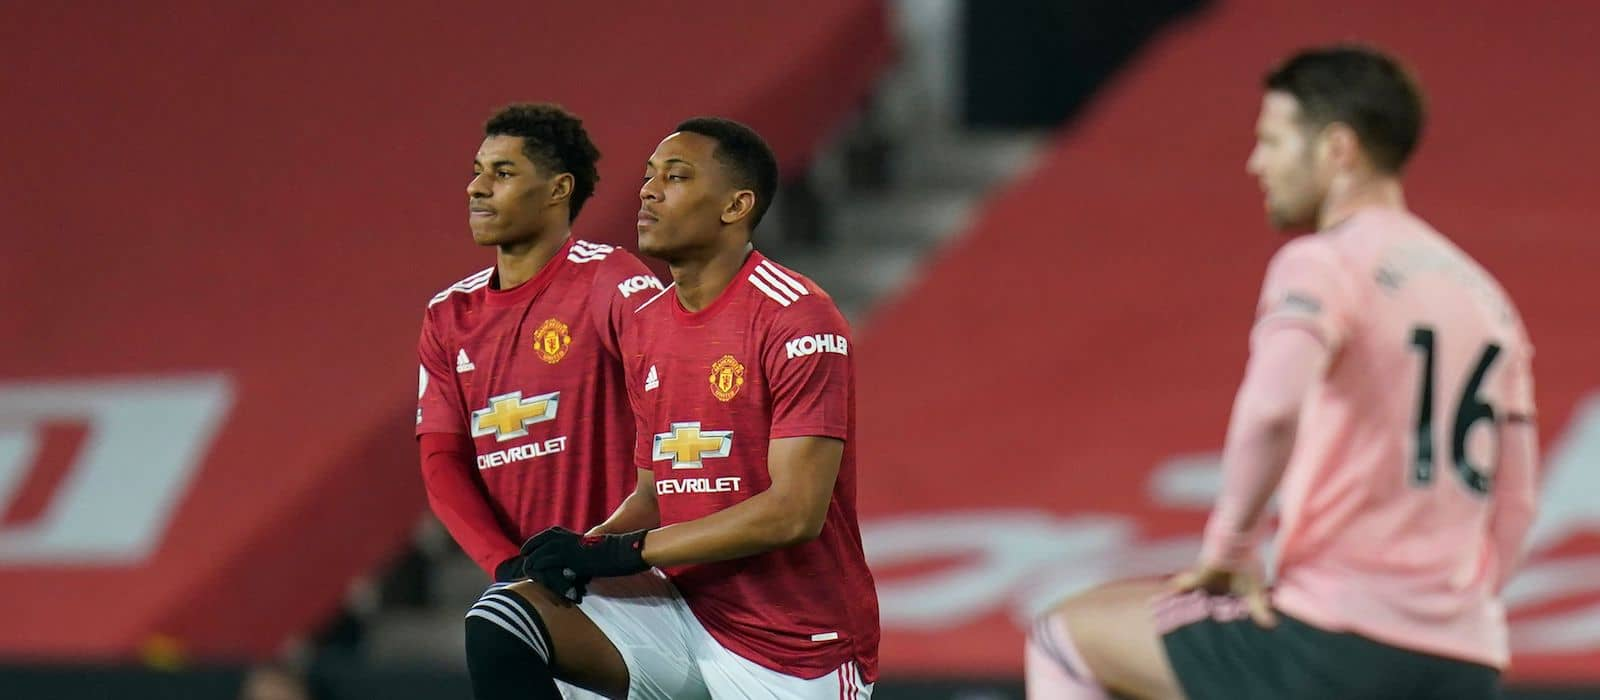 Ole Gunnar Solskjaer says Man United forwards need to risk more